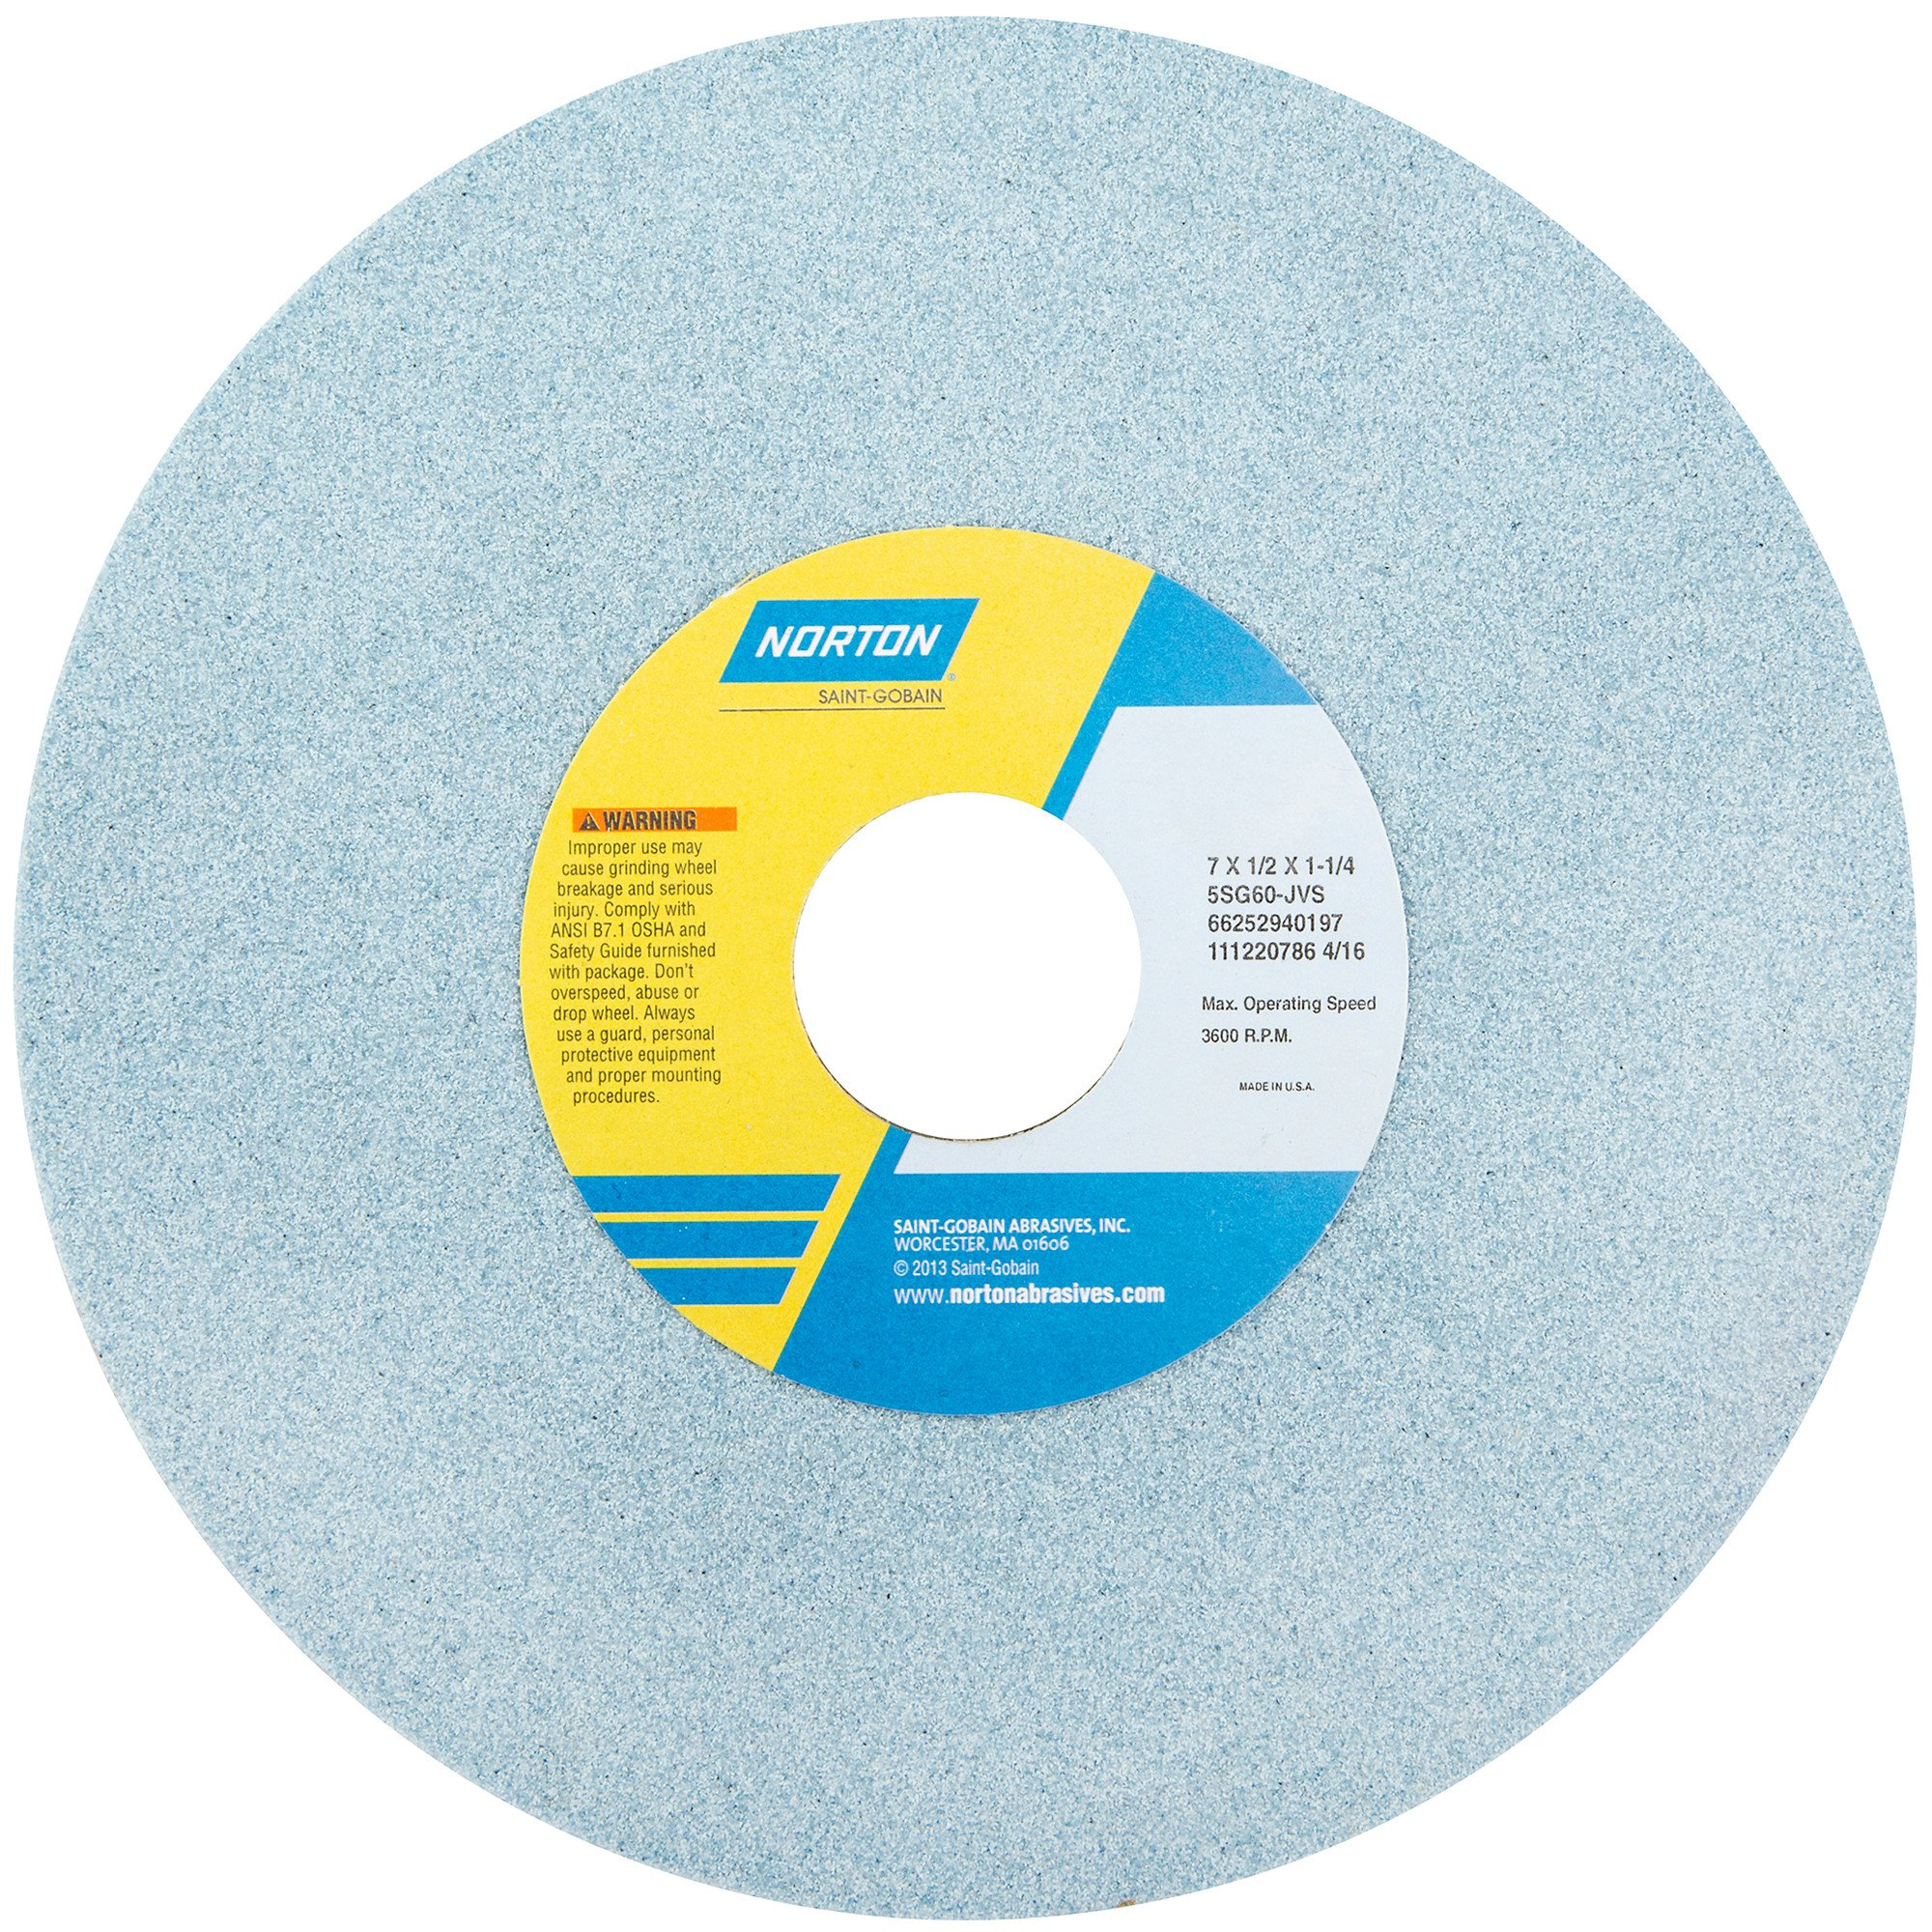 Norton 66252940198 Surface Grinding Wheels Size 7 x 1/2 x 1-1/4 by Unknown